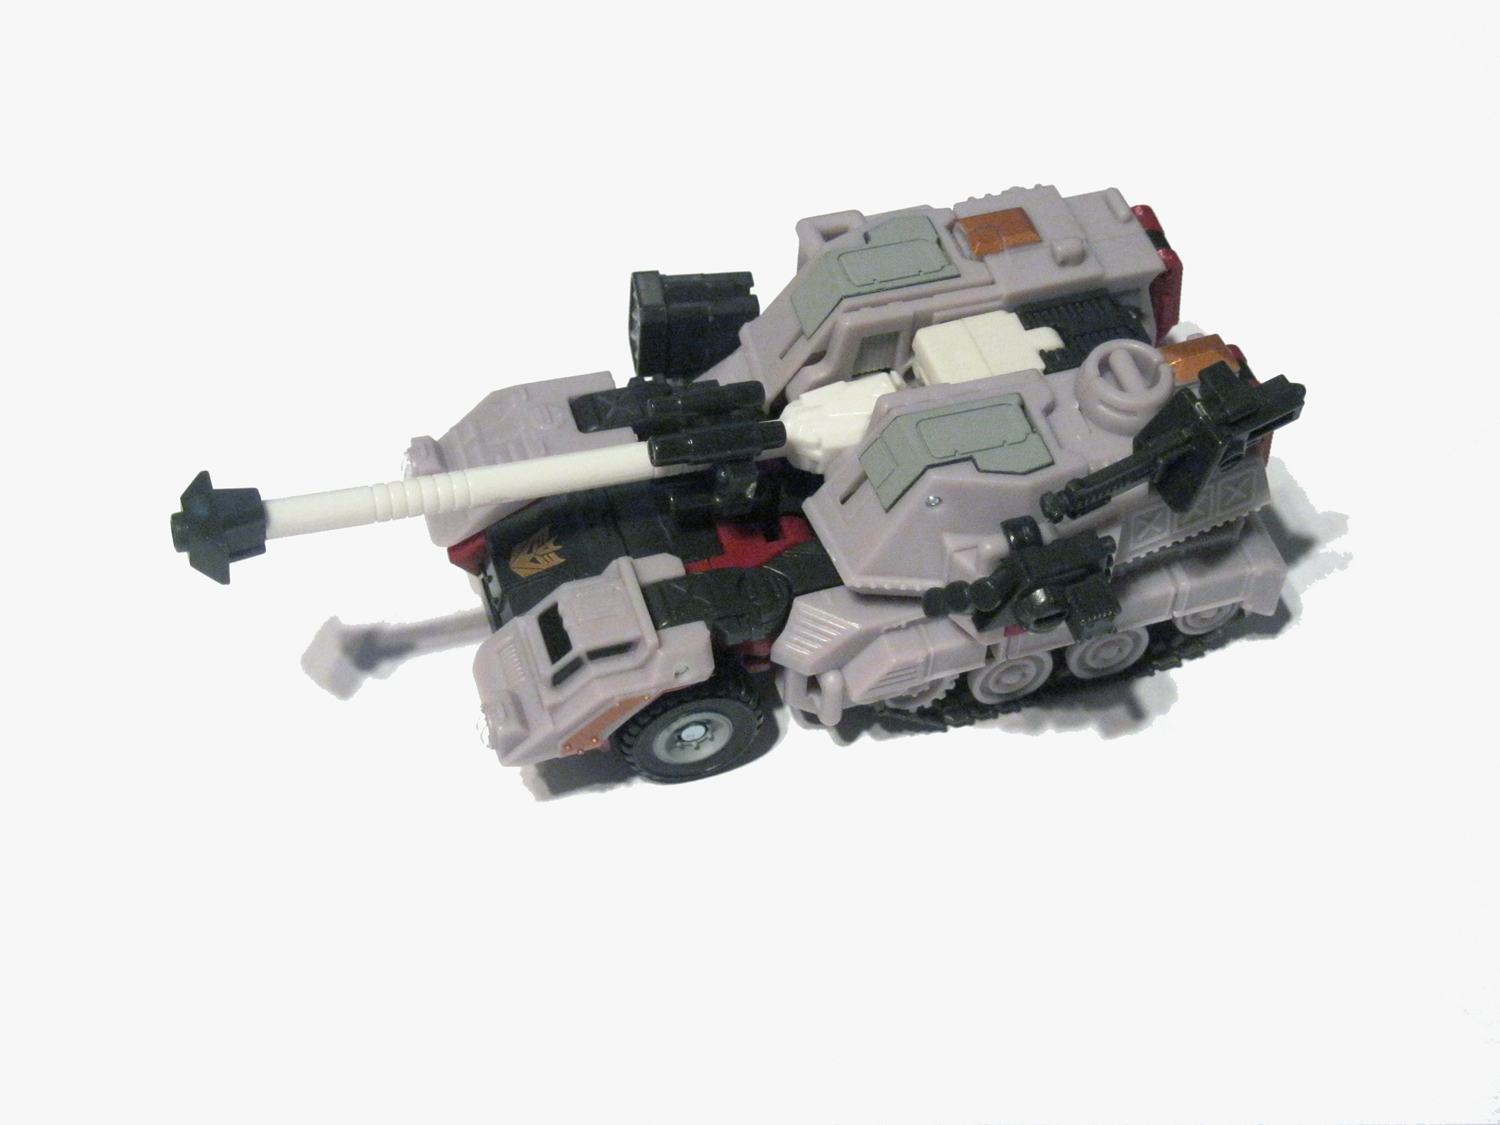 FansProject Protector Armor - Adding Articulated Hands!-skullgrin01.jpg